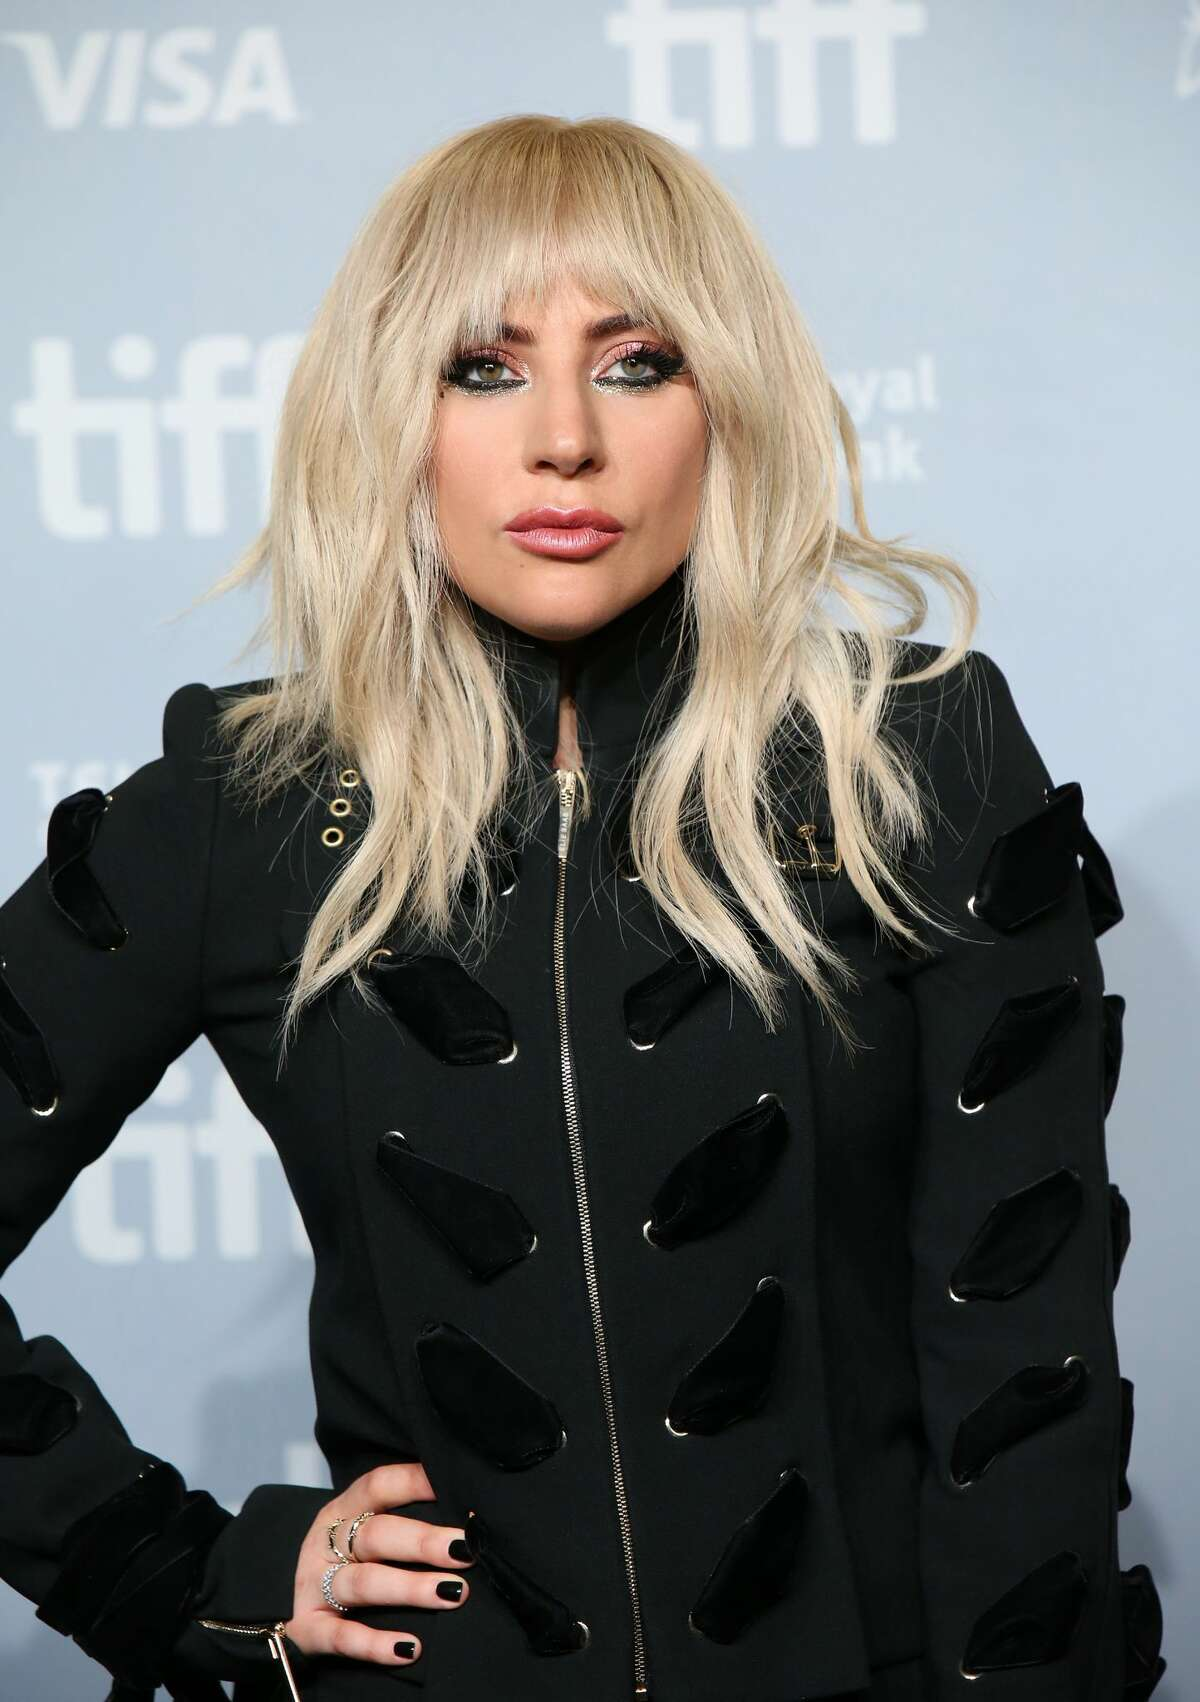 """Lady Gaga The singer shares in her 2017 Netflix documentary """"Five Foot Two,"""" that she has fibromyalgia. The disorder causes widespread muscle pain and tenderness."""